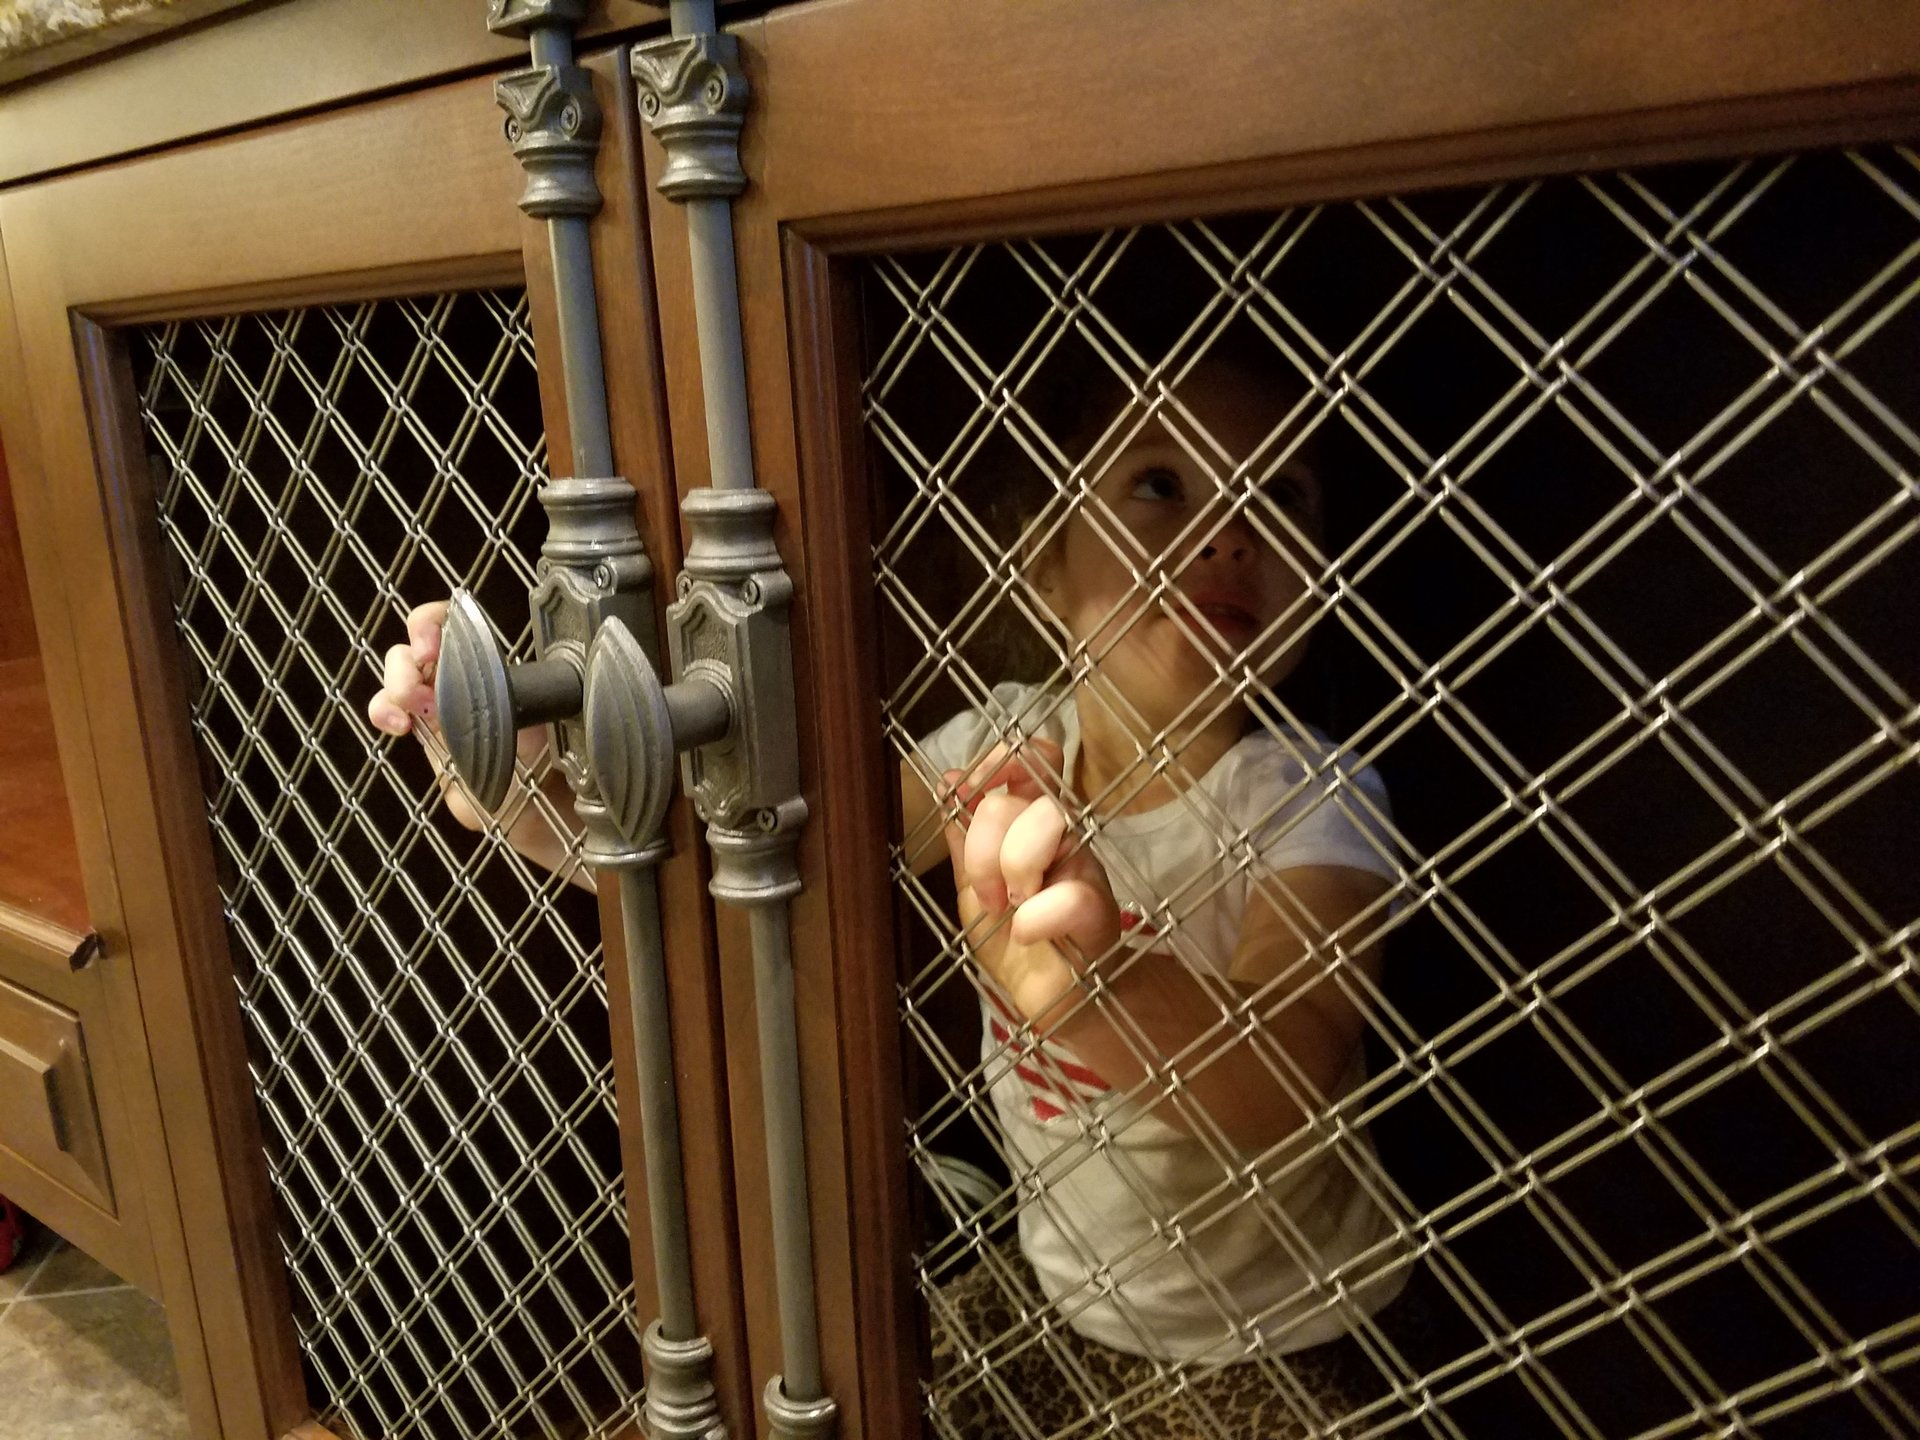 Lela in Kennel